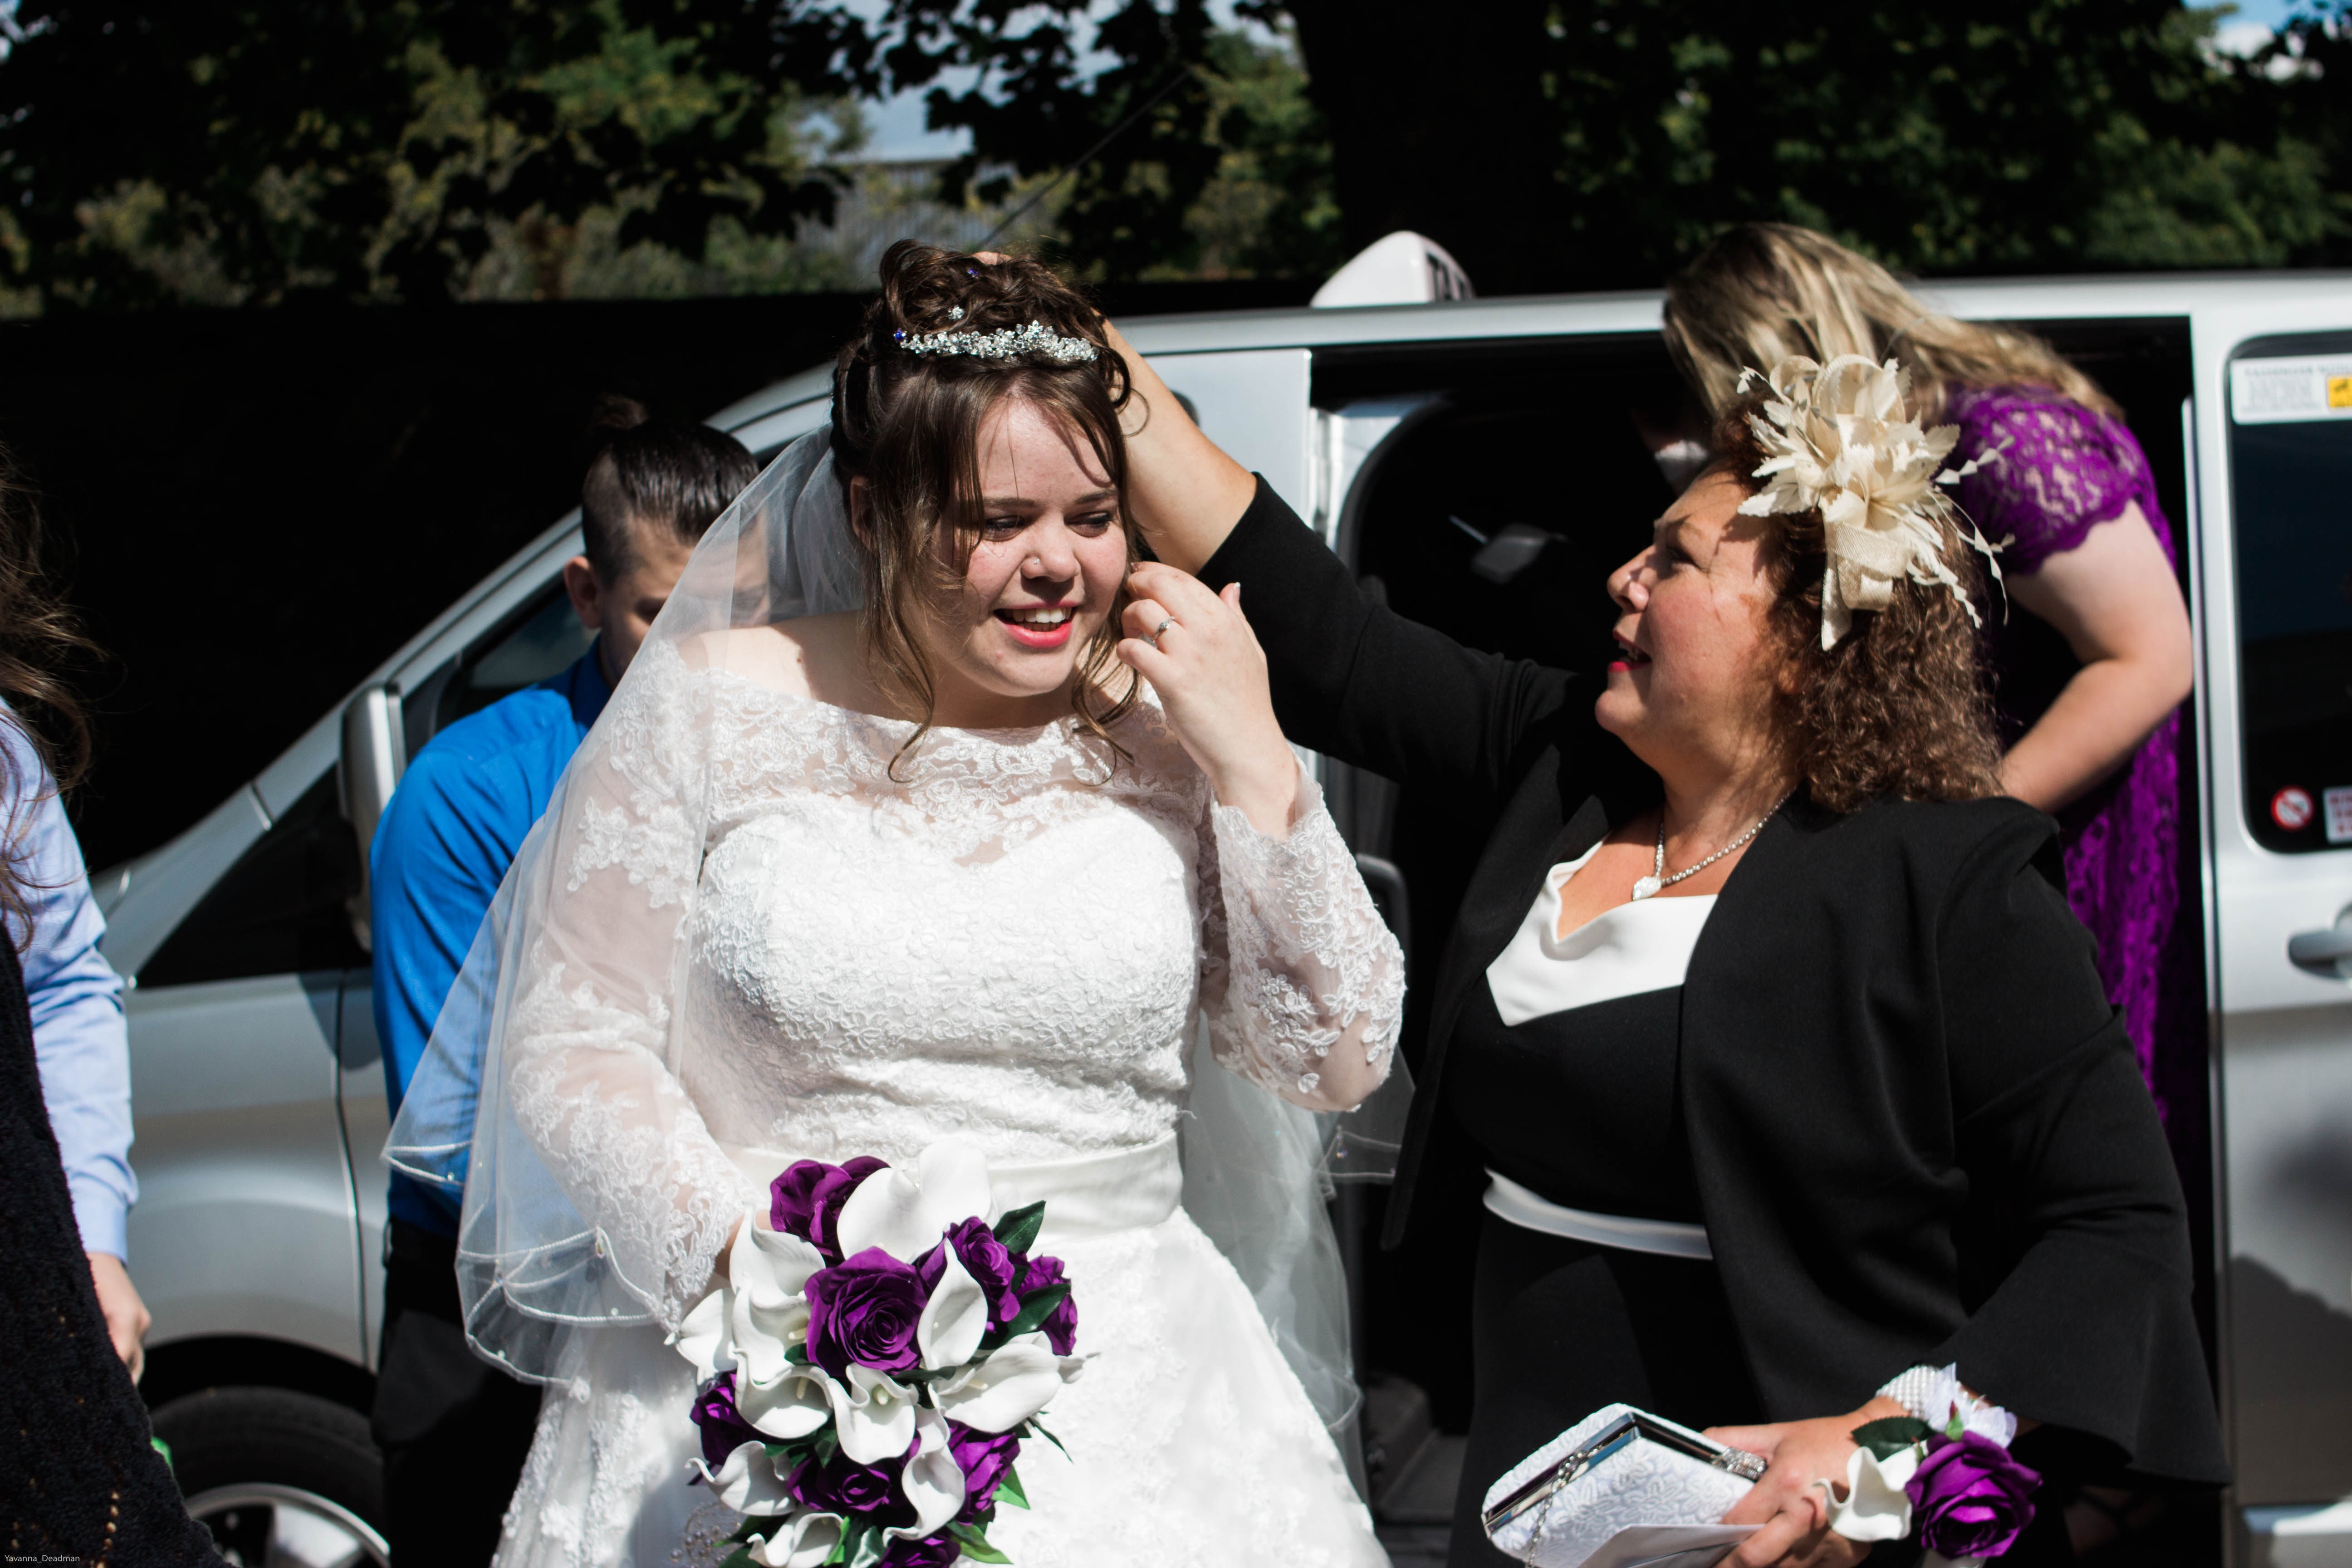 Looking back at mine and my wife's wedding